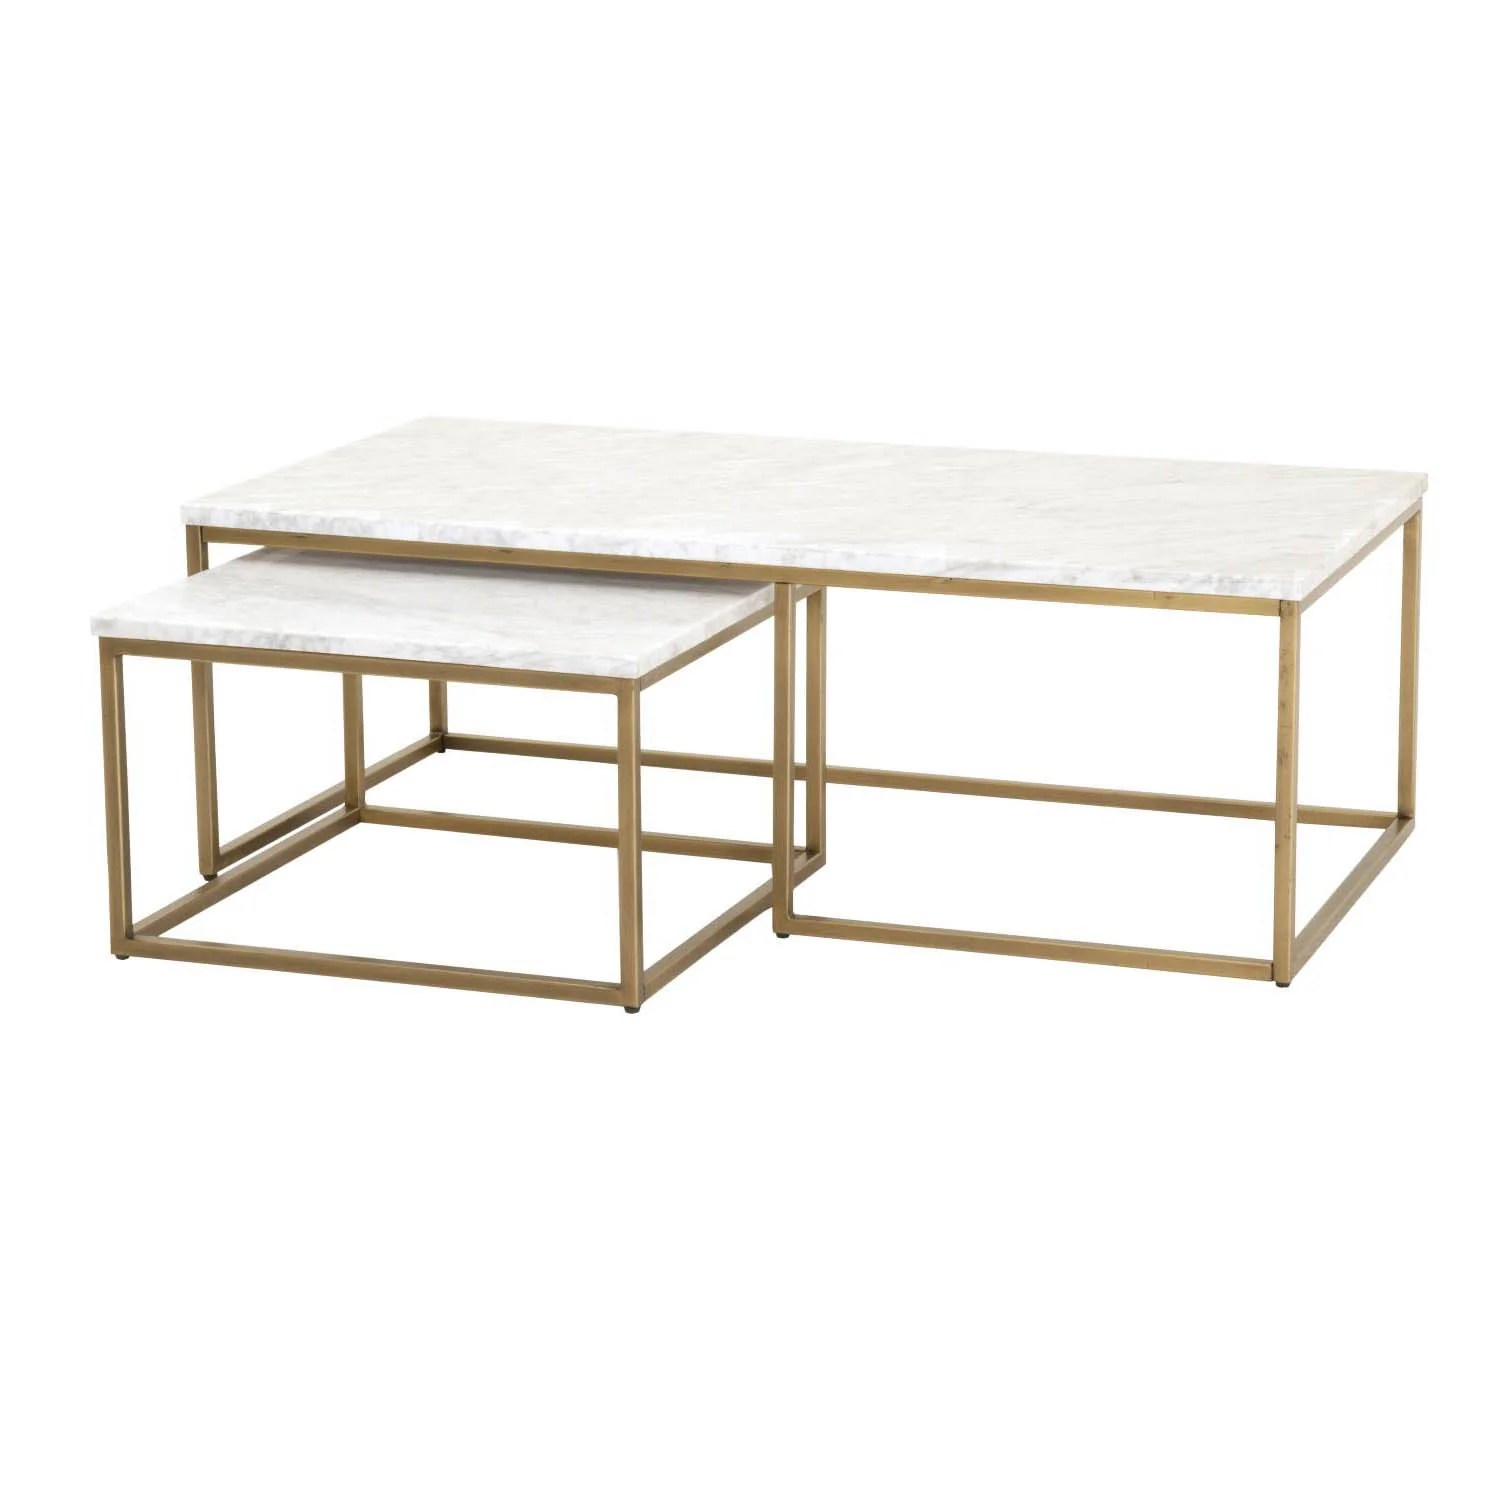 Gold Nesting Coffee Table Carrera Nesting Coffee Table